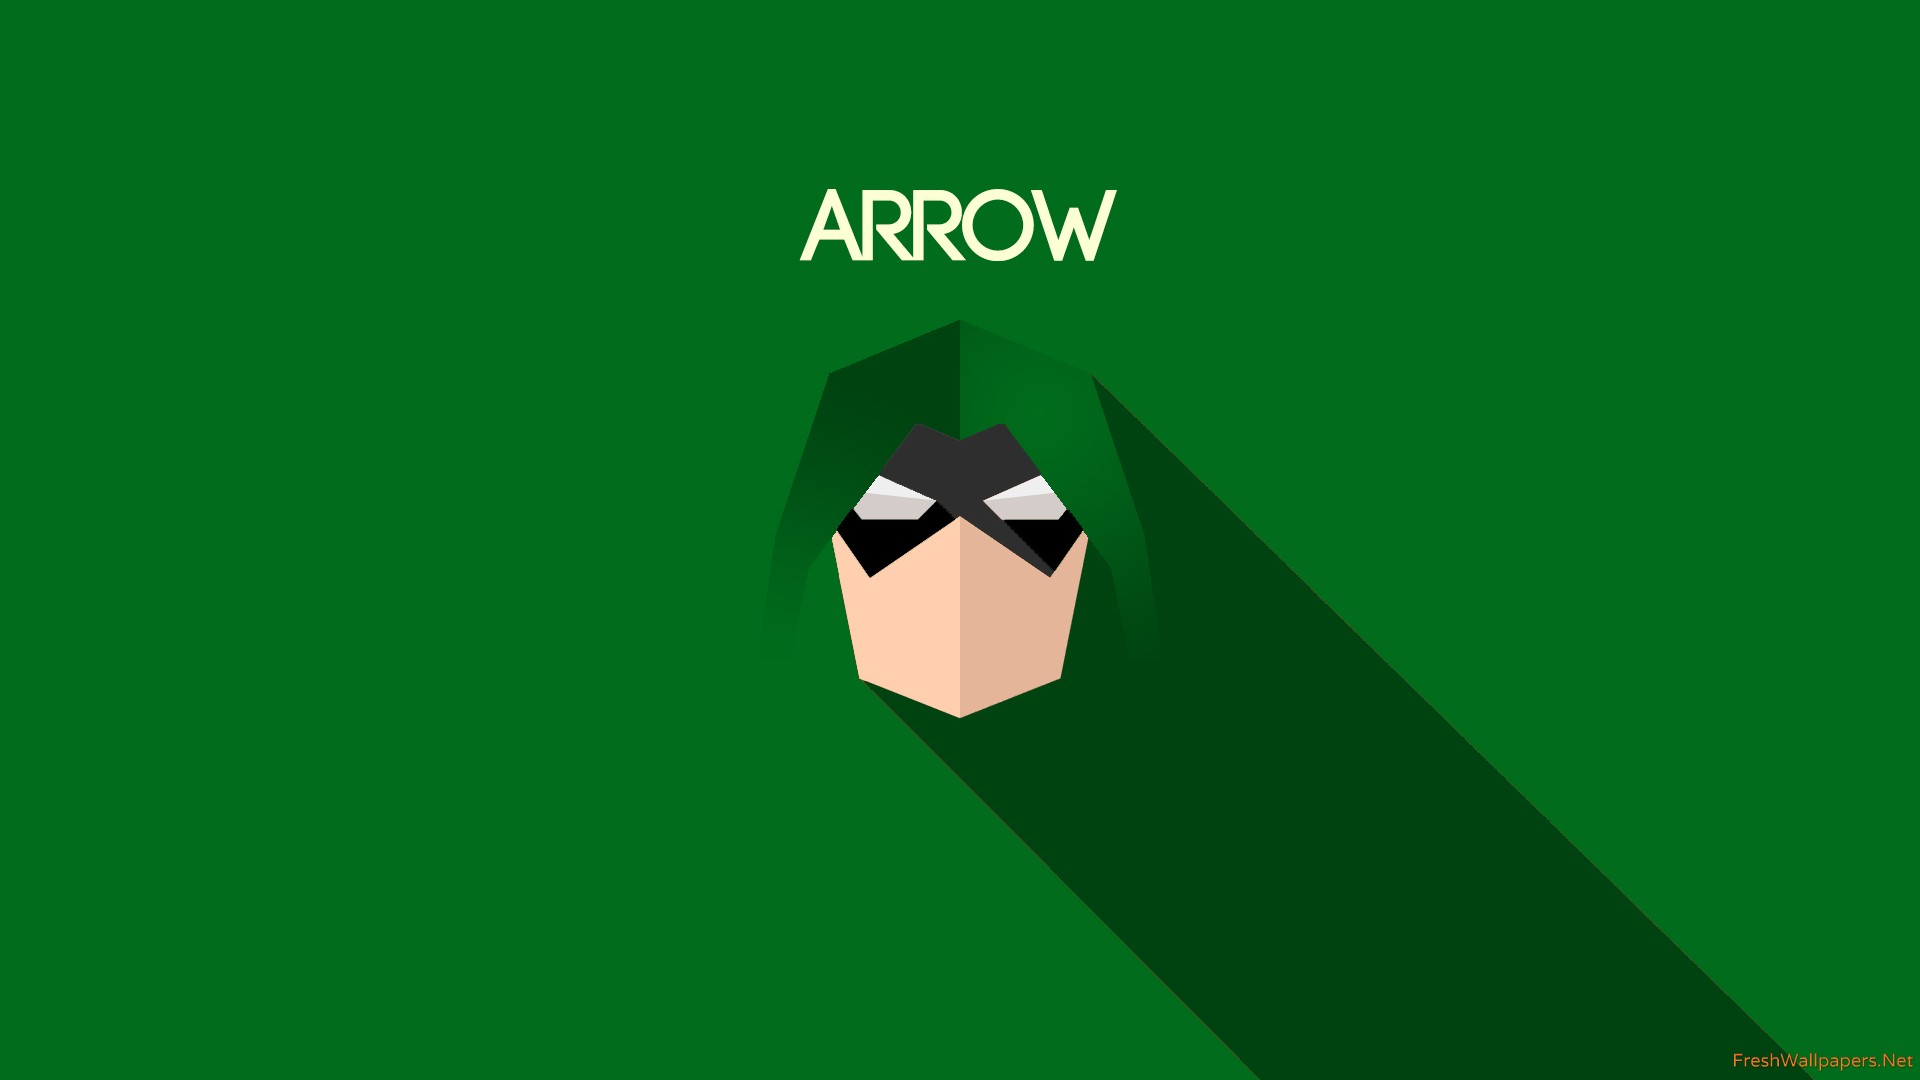 Green Arrow Wallpaper